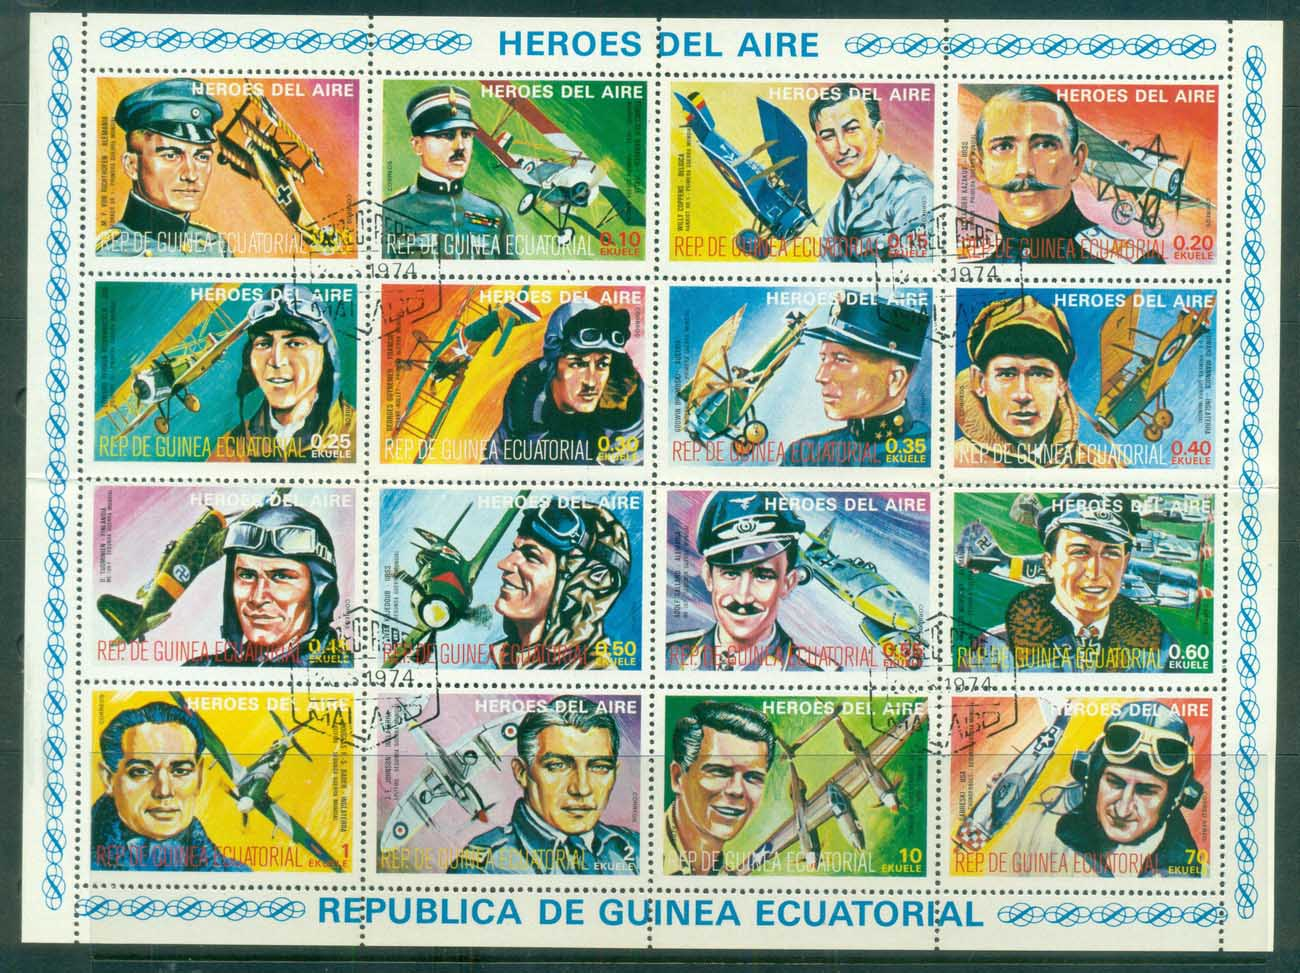 Equatorial Guinea 1974 Heroes of the Air Sheetlet CTO